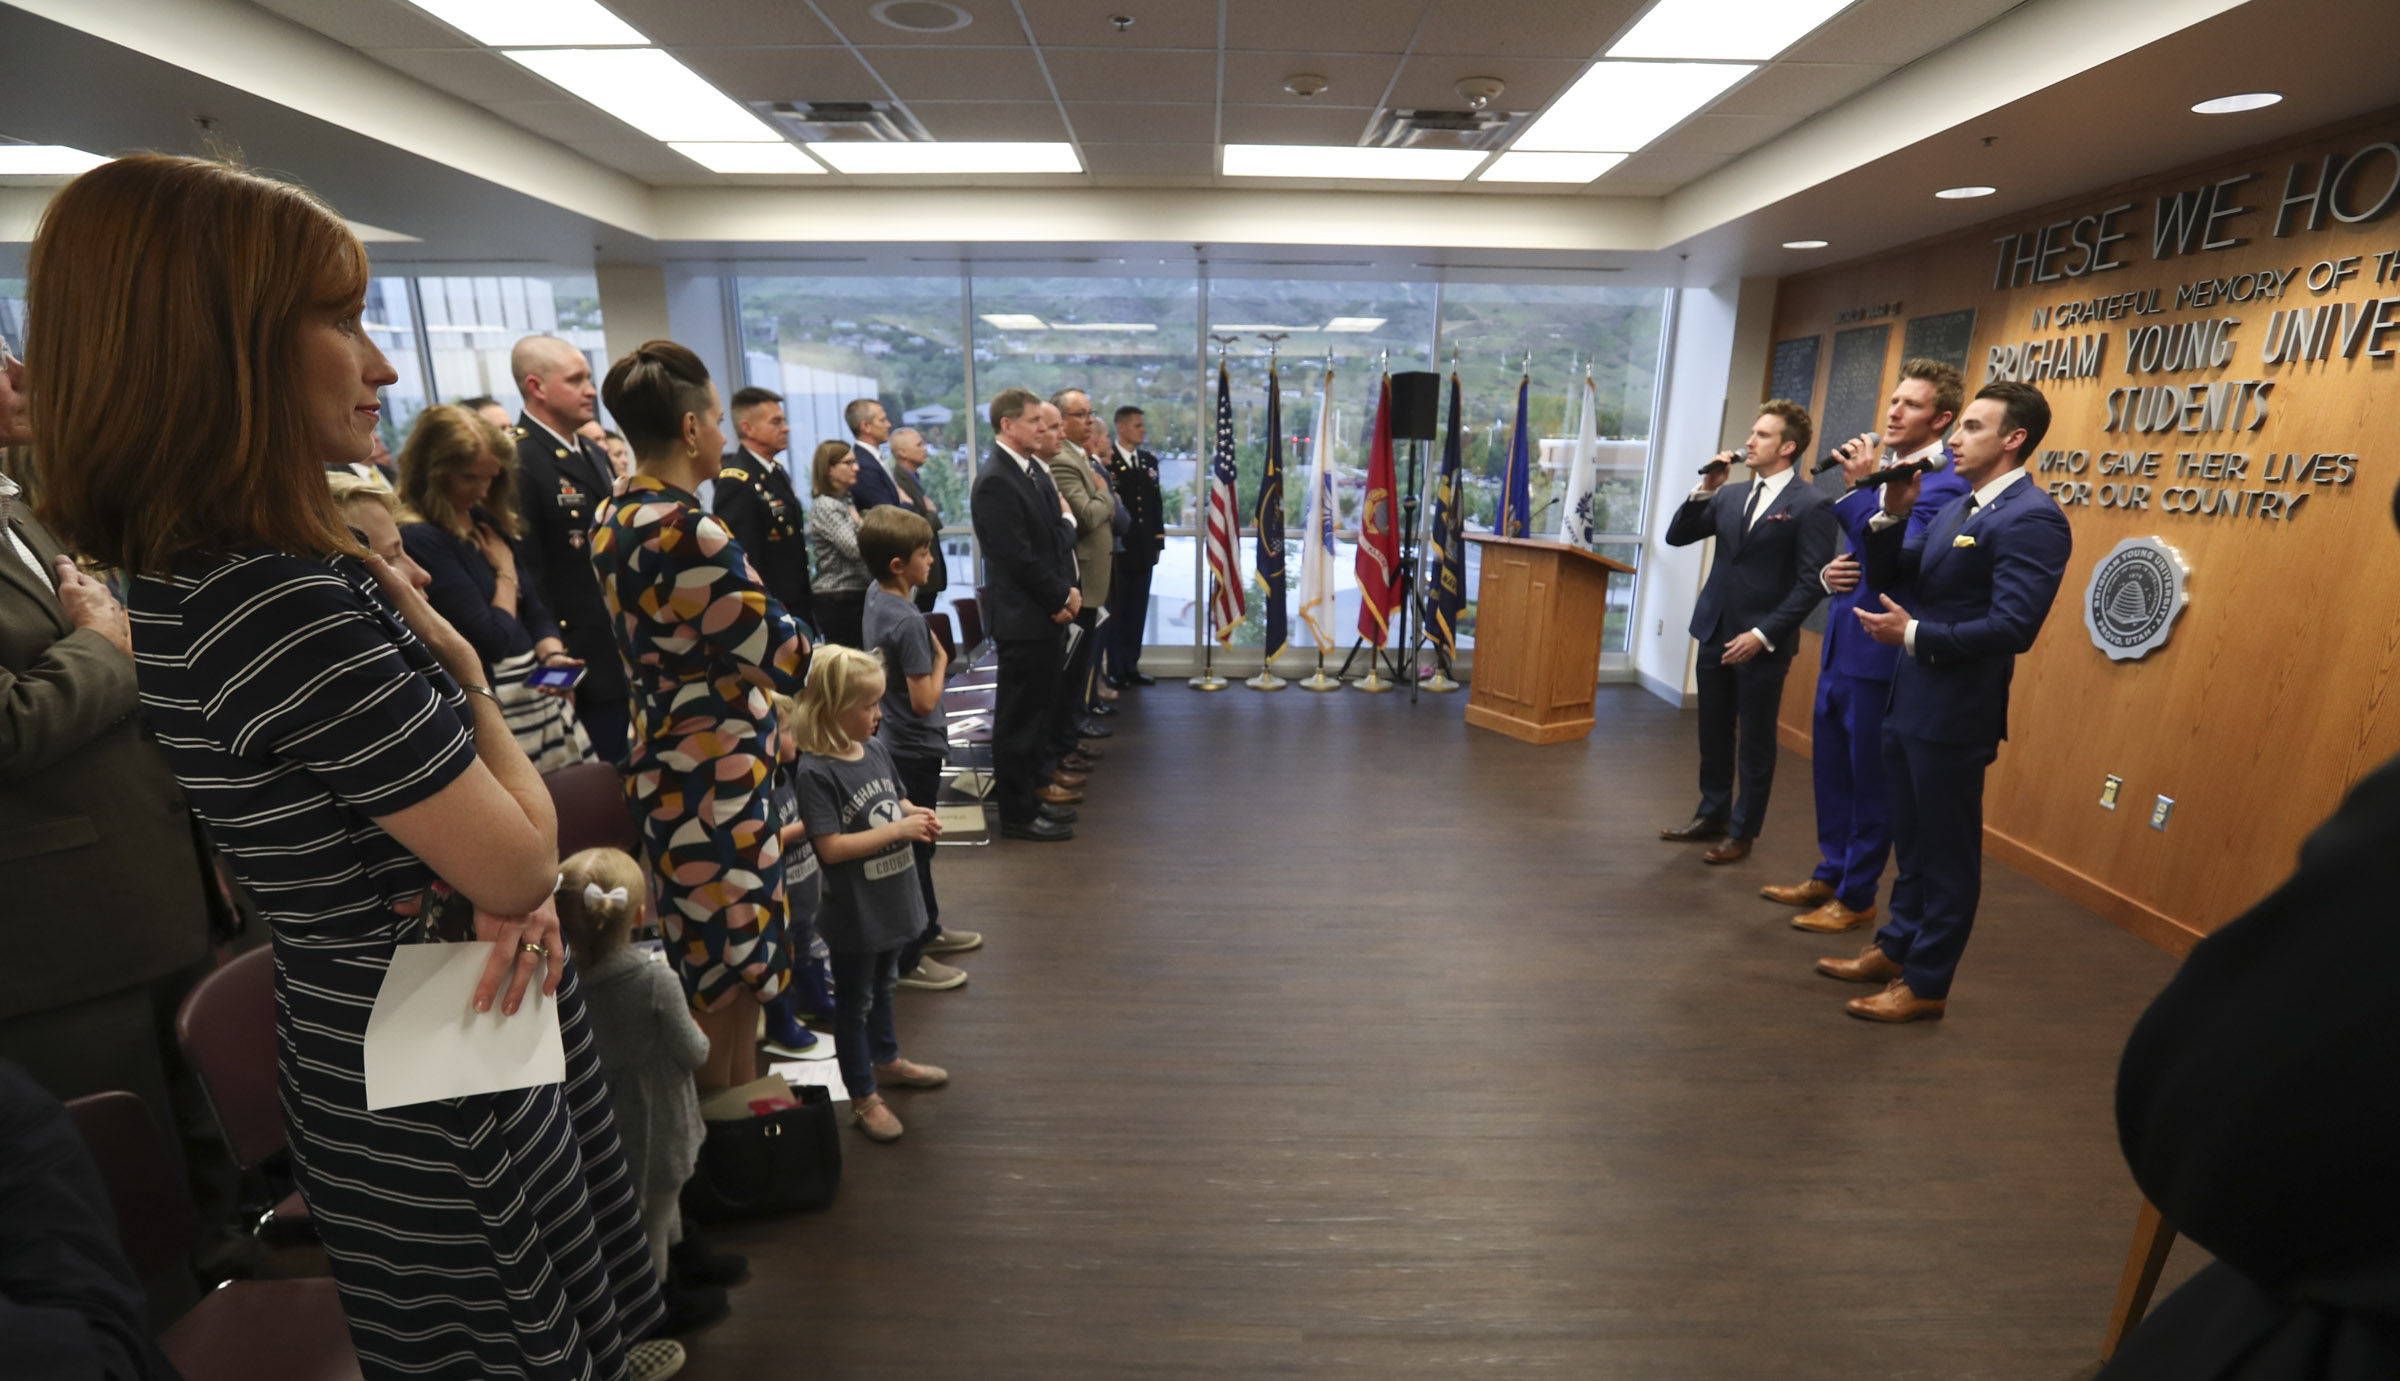 Jennie Taylor stands with her children as the group Gentri sings the National Anthem during a ceremony where the name of her late husband, Maj. Brent Taylor, was added to the Reflection Room Memorial Wall in the Wilkinson Center on the BYU campus in Provo on Thursday, May 23, 2019. Taylor was killed in Afghanistan in 2018.